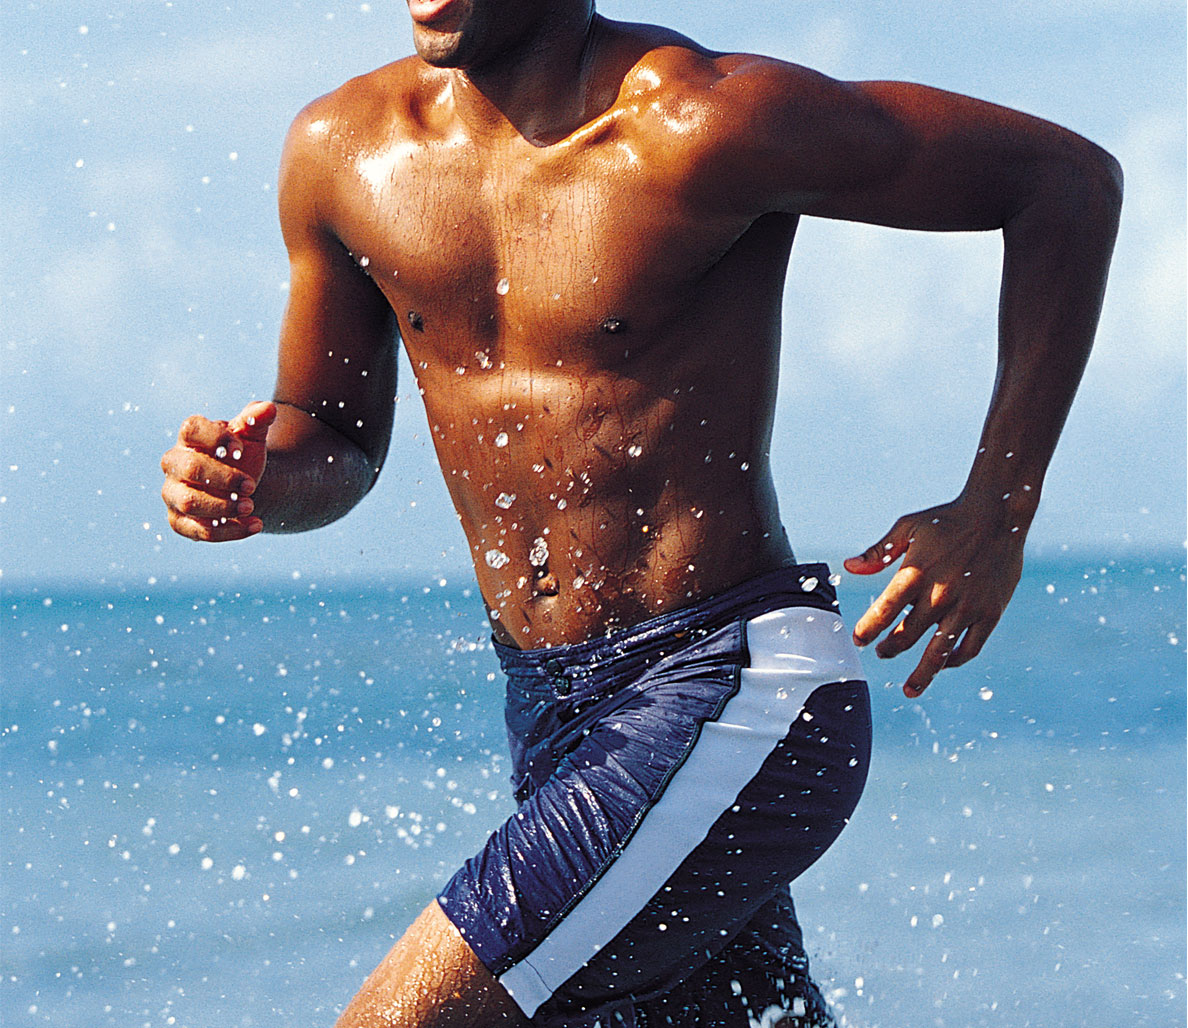 http://www.mensfitness.com/weight-loss/success-stories/summer-body-project